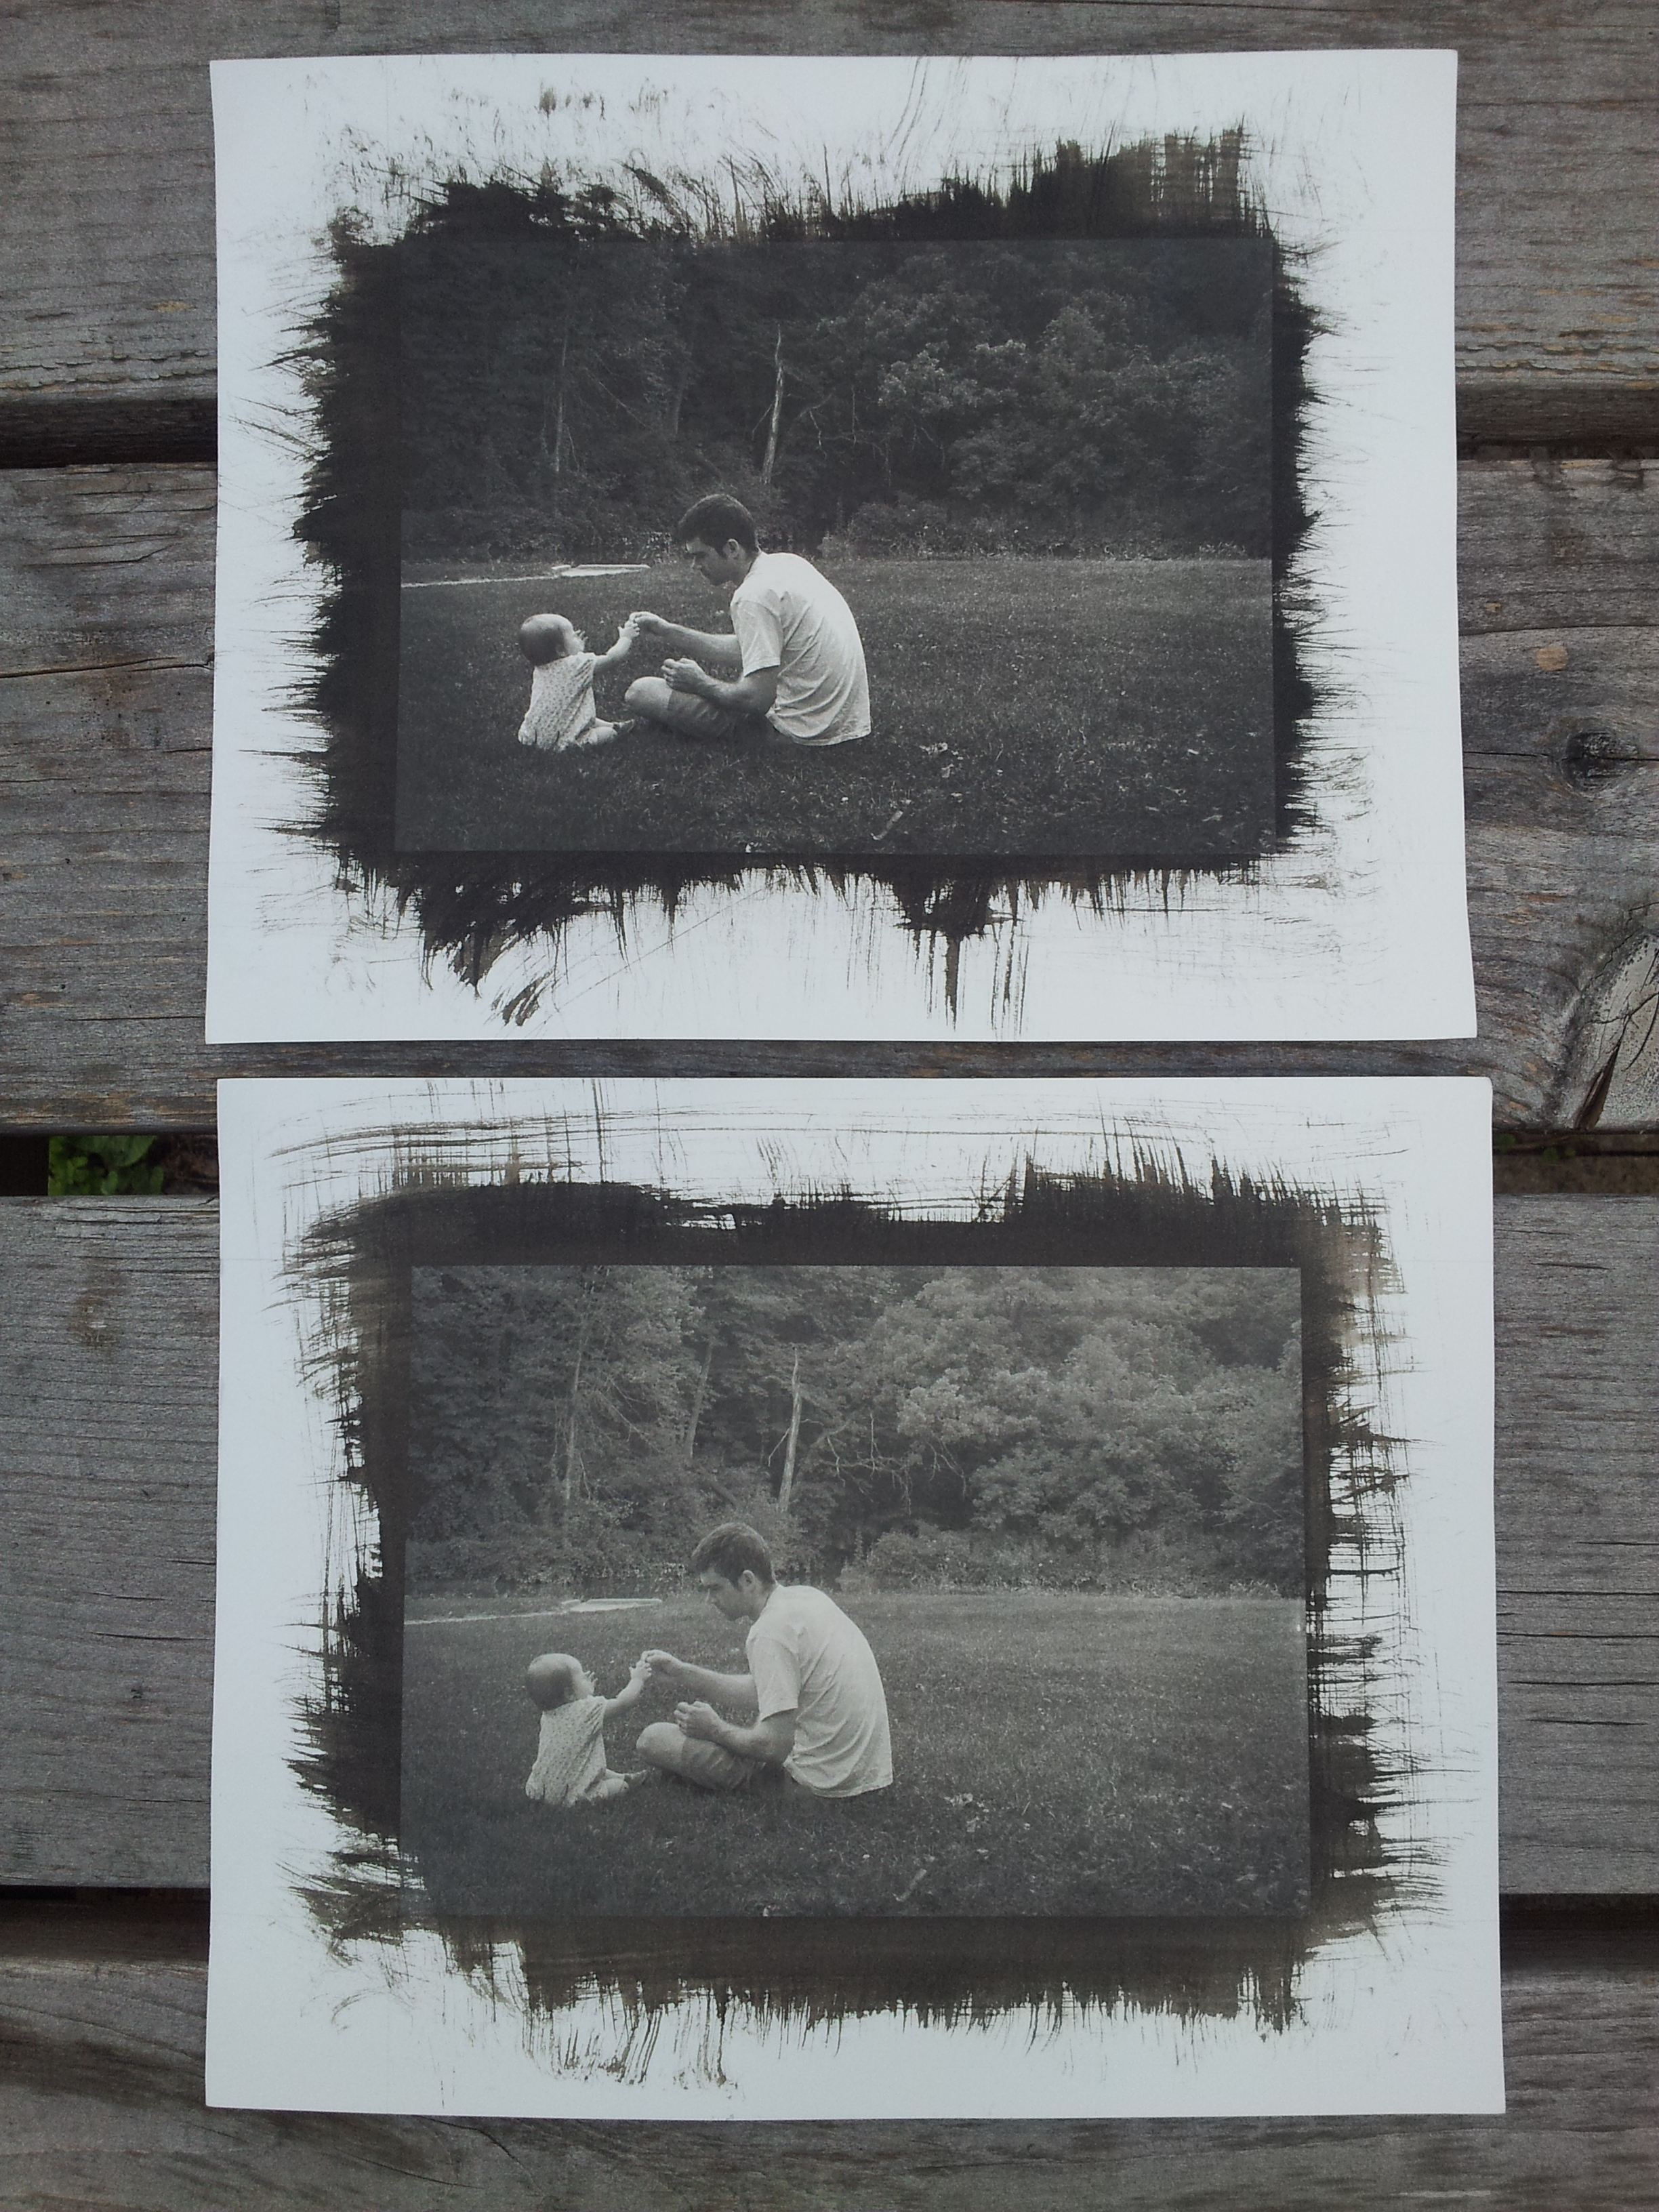 Platinum Palladium prints. The top one was printed from a digital negative with more contrast.